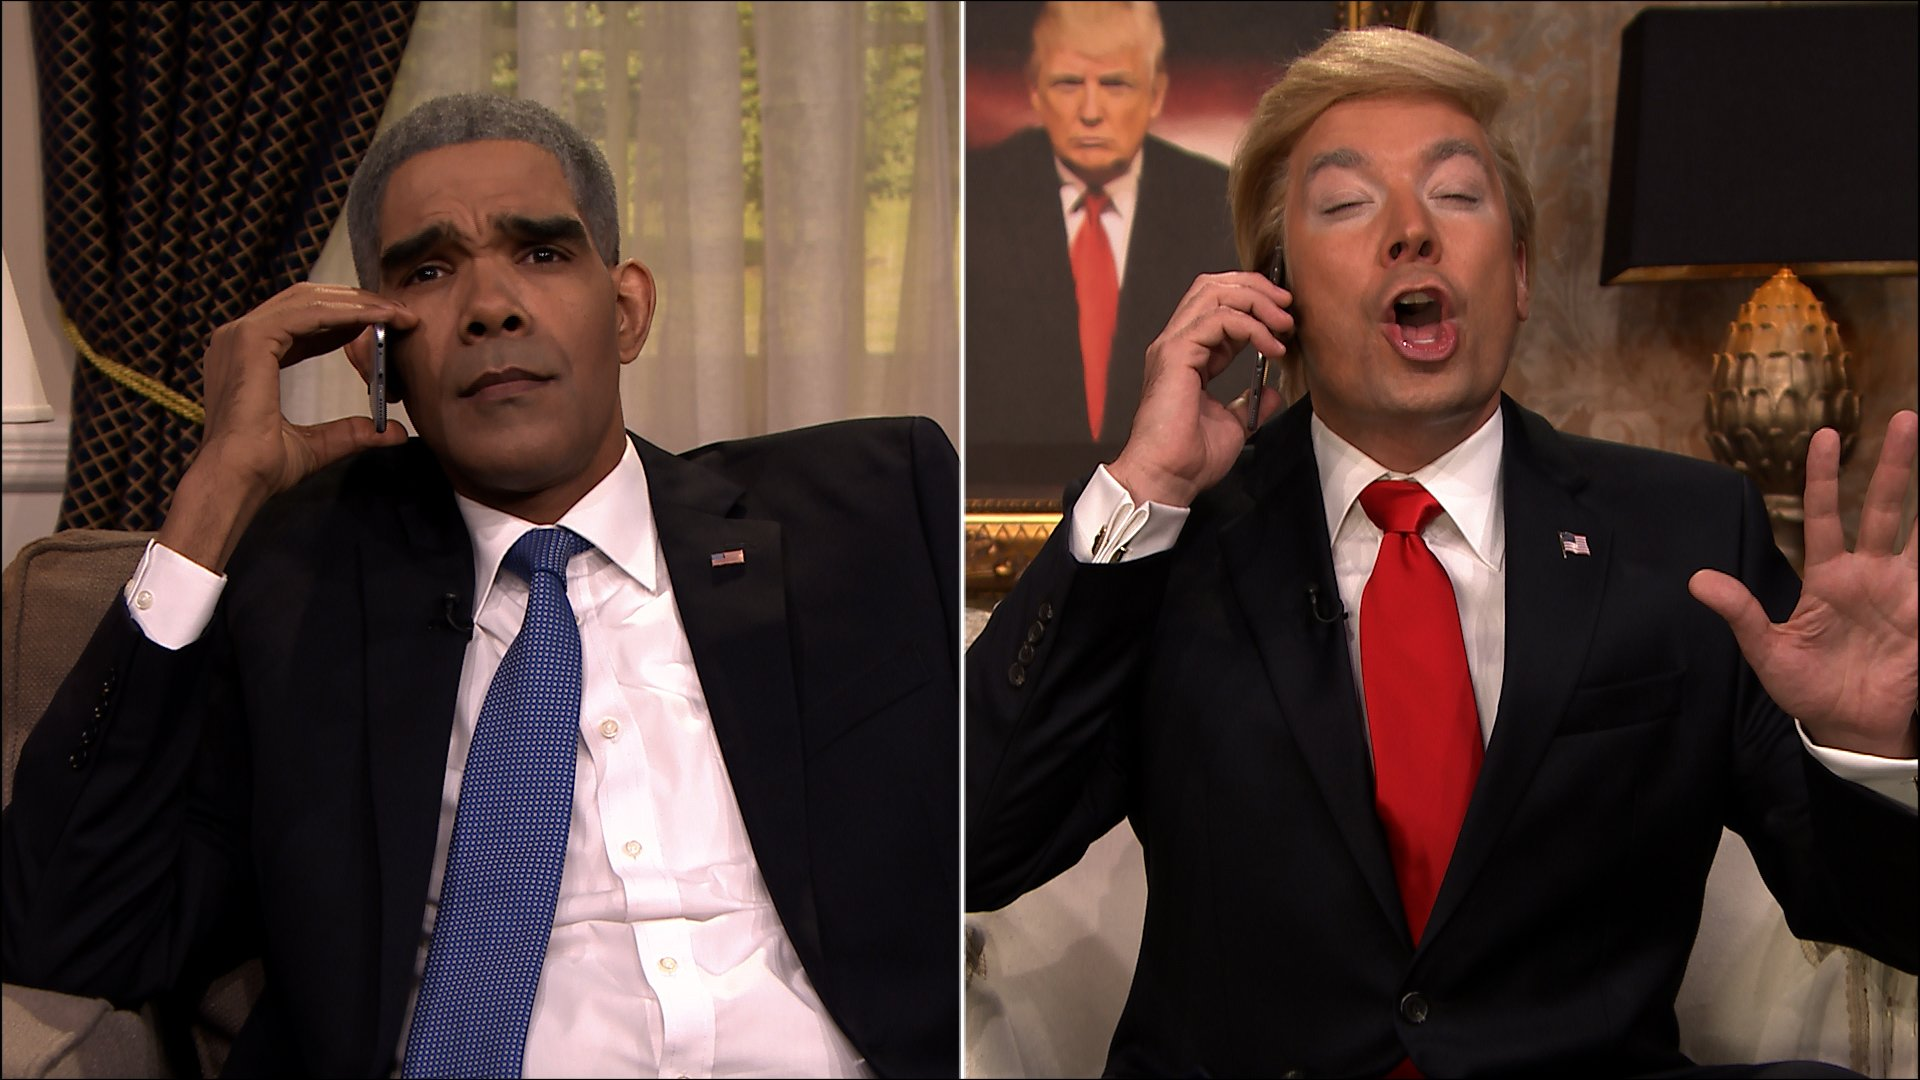 Donald Trump just called President Obama, and we got footage of it. Tune in tonight! #DonaldWithTheGoodHair https://t.co/W0X4gZYCpA